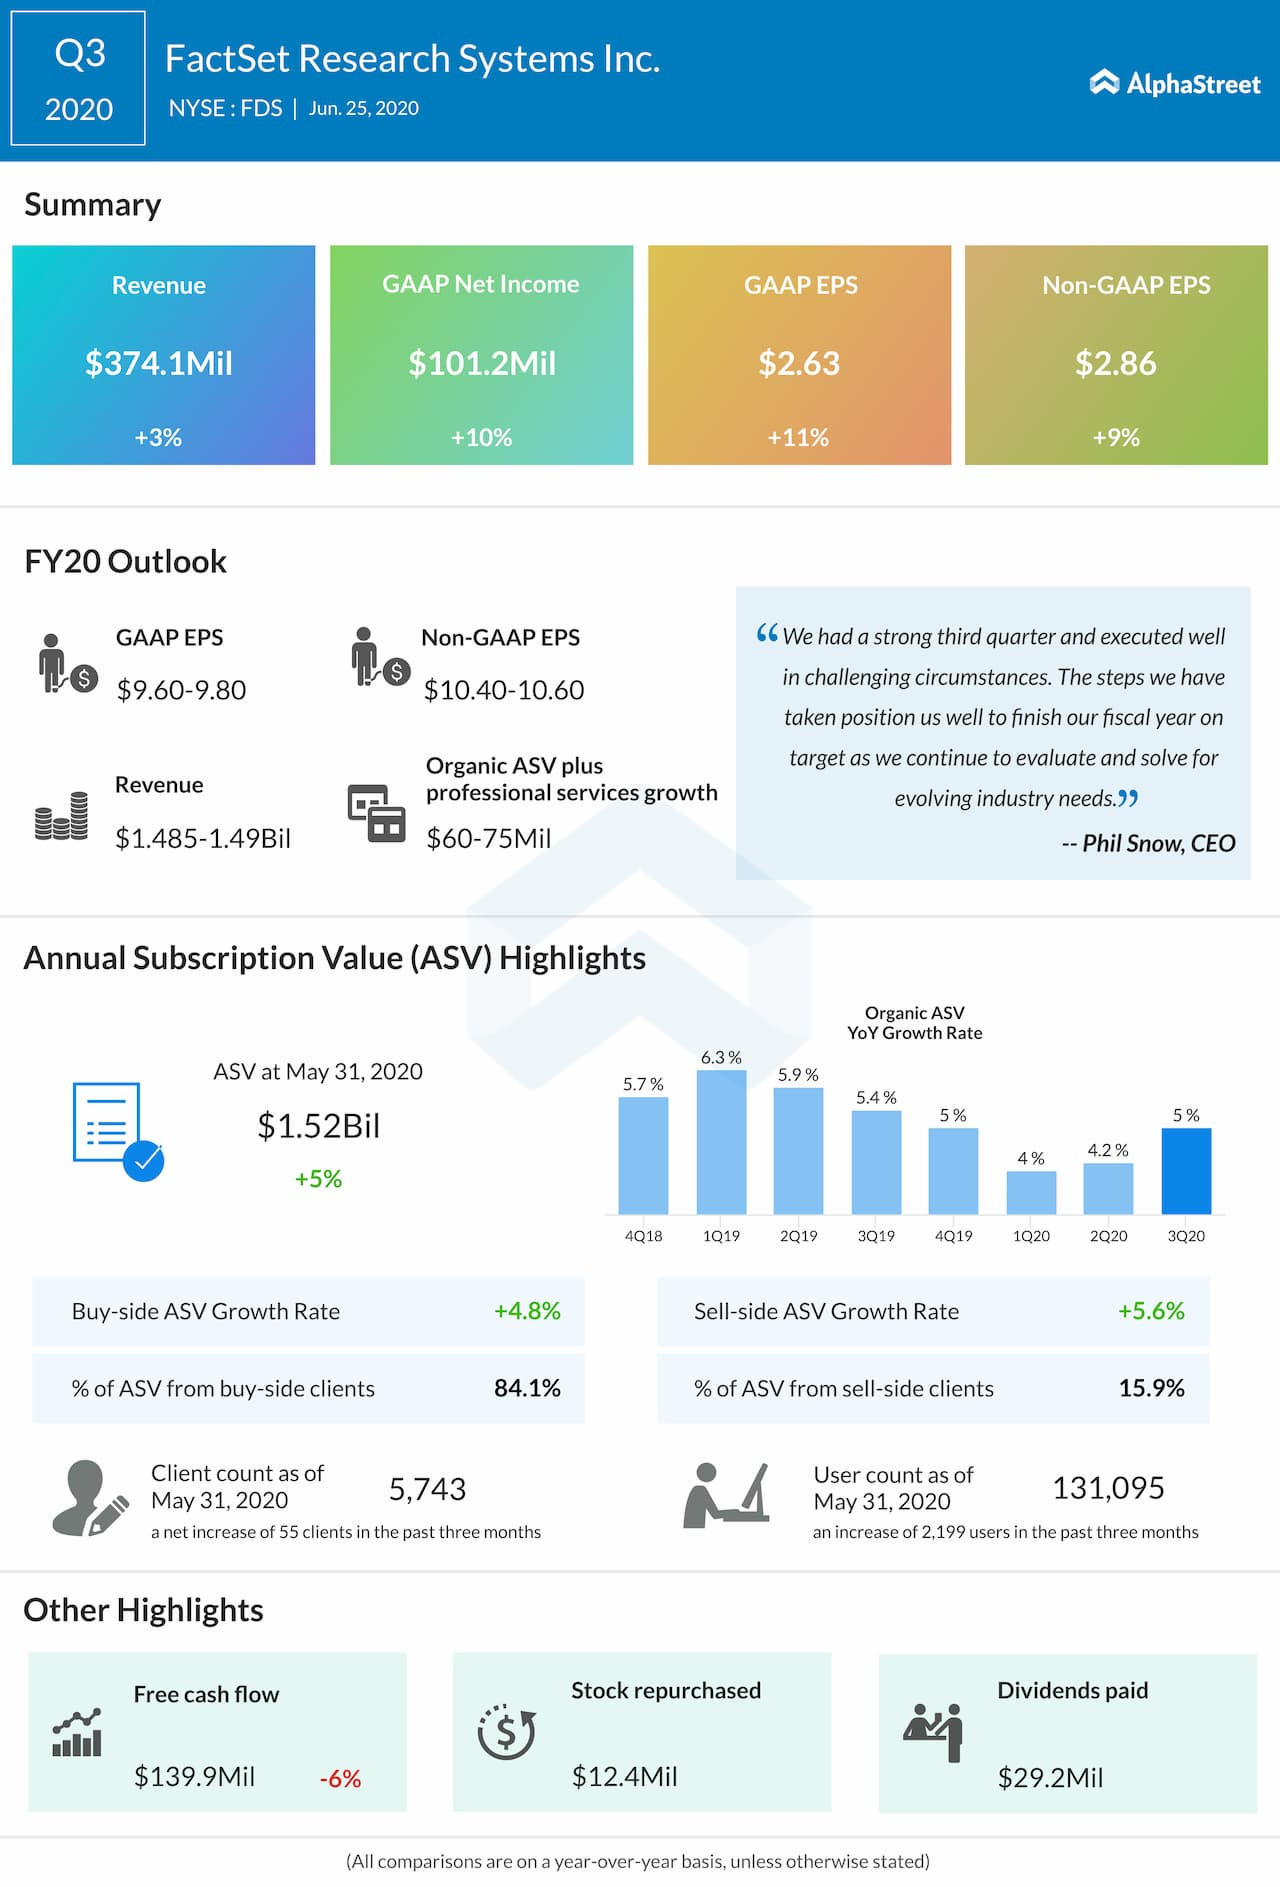 FactSet Research Systems (FDS) reports Q3 2020 earnings